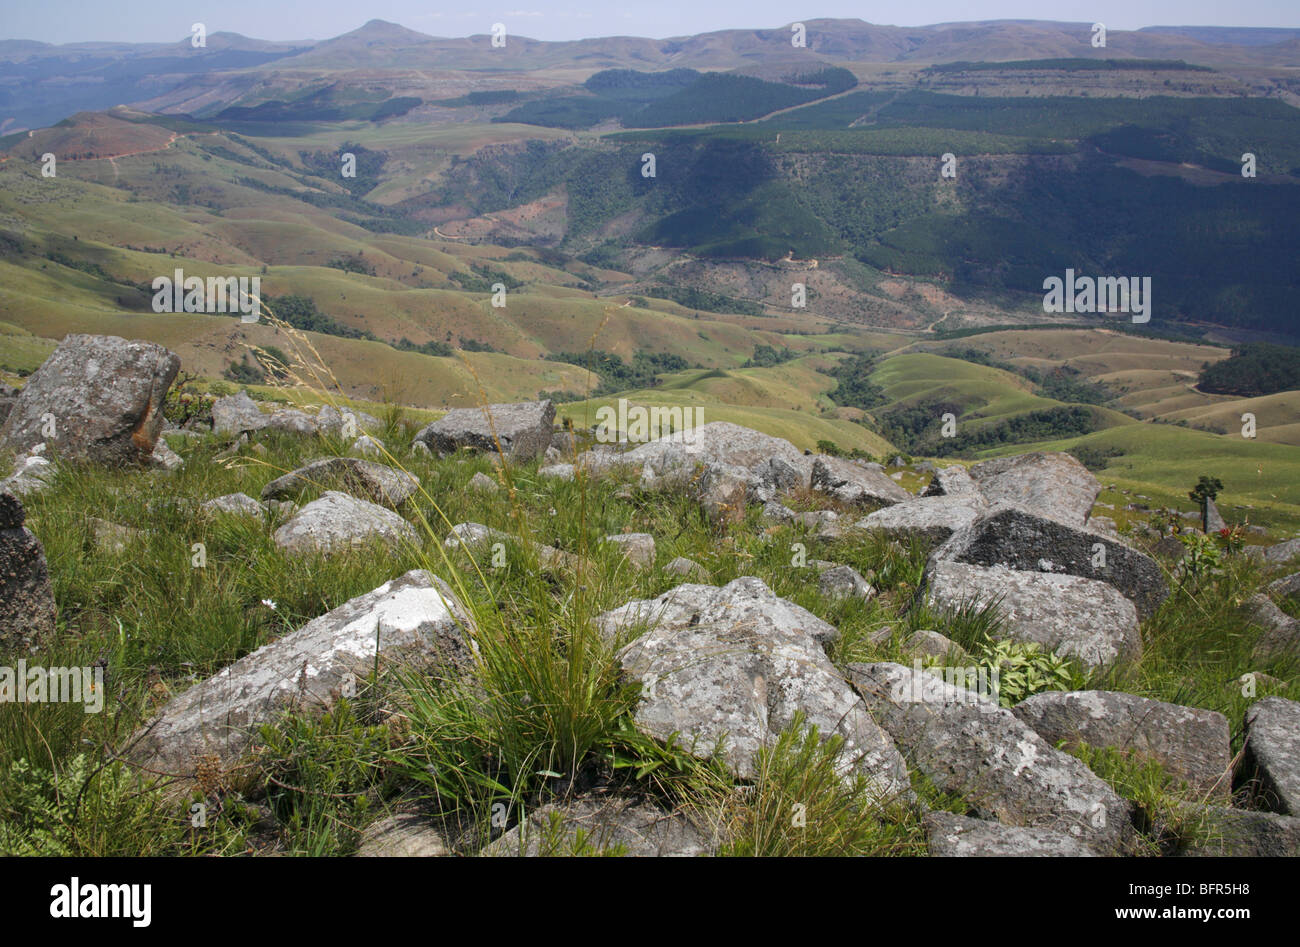 Scenic view of the mountains and valleys from Mount Moody in the Transvaal Drakensberg - Stock Image